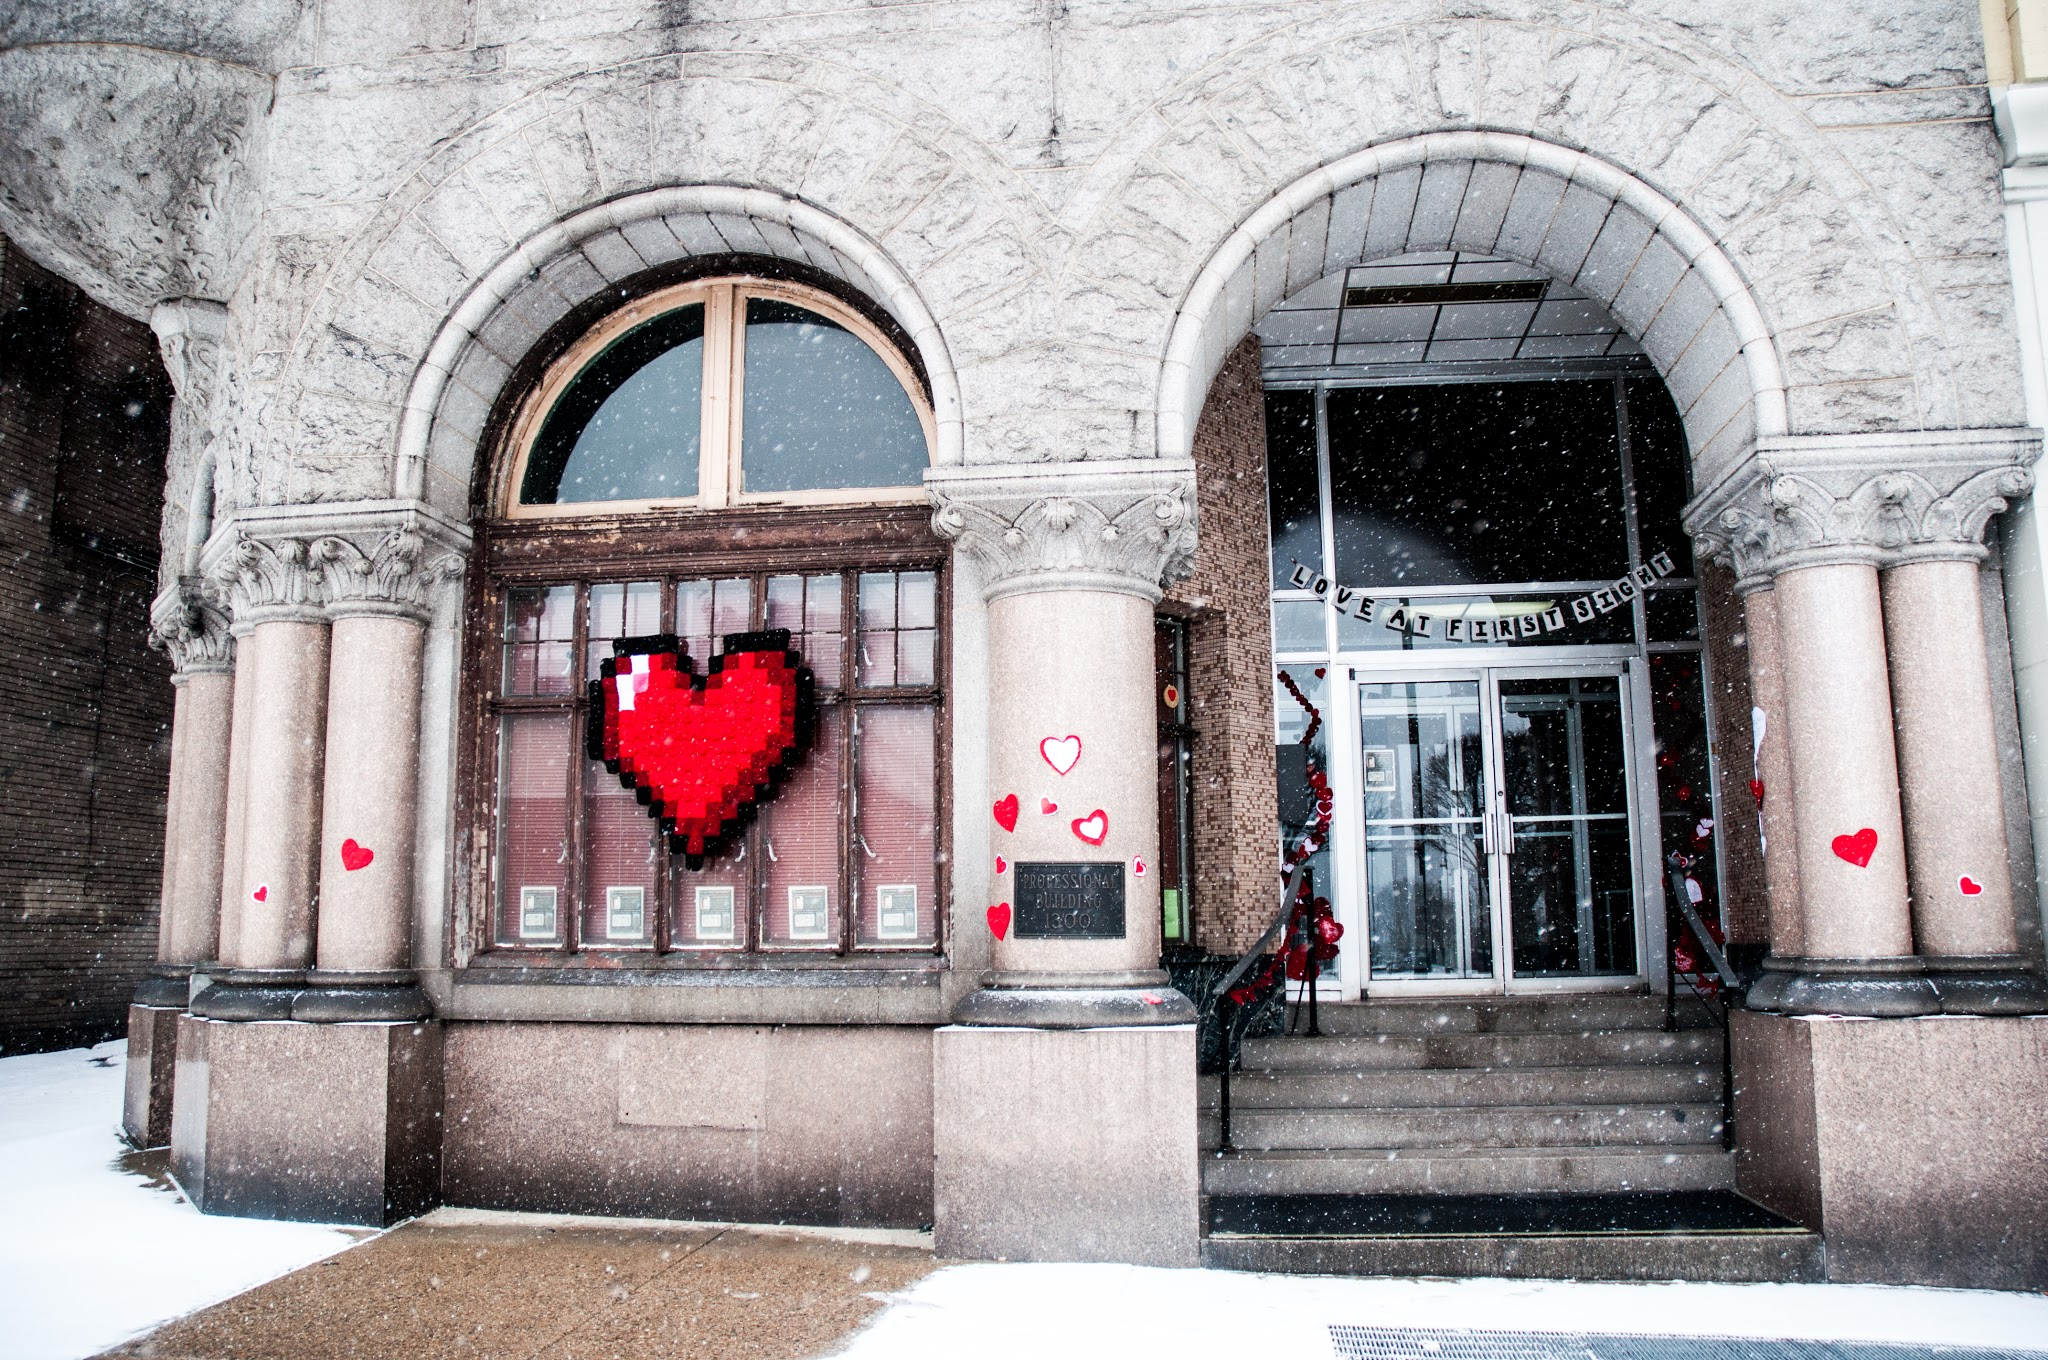 2-9-2014 Professional Building Hearts-9855